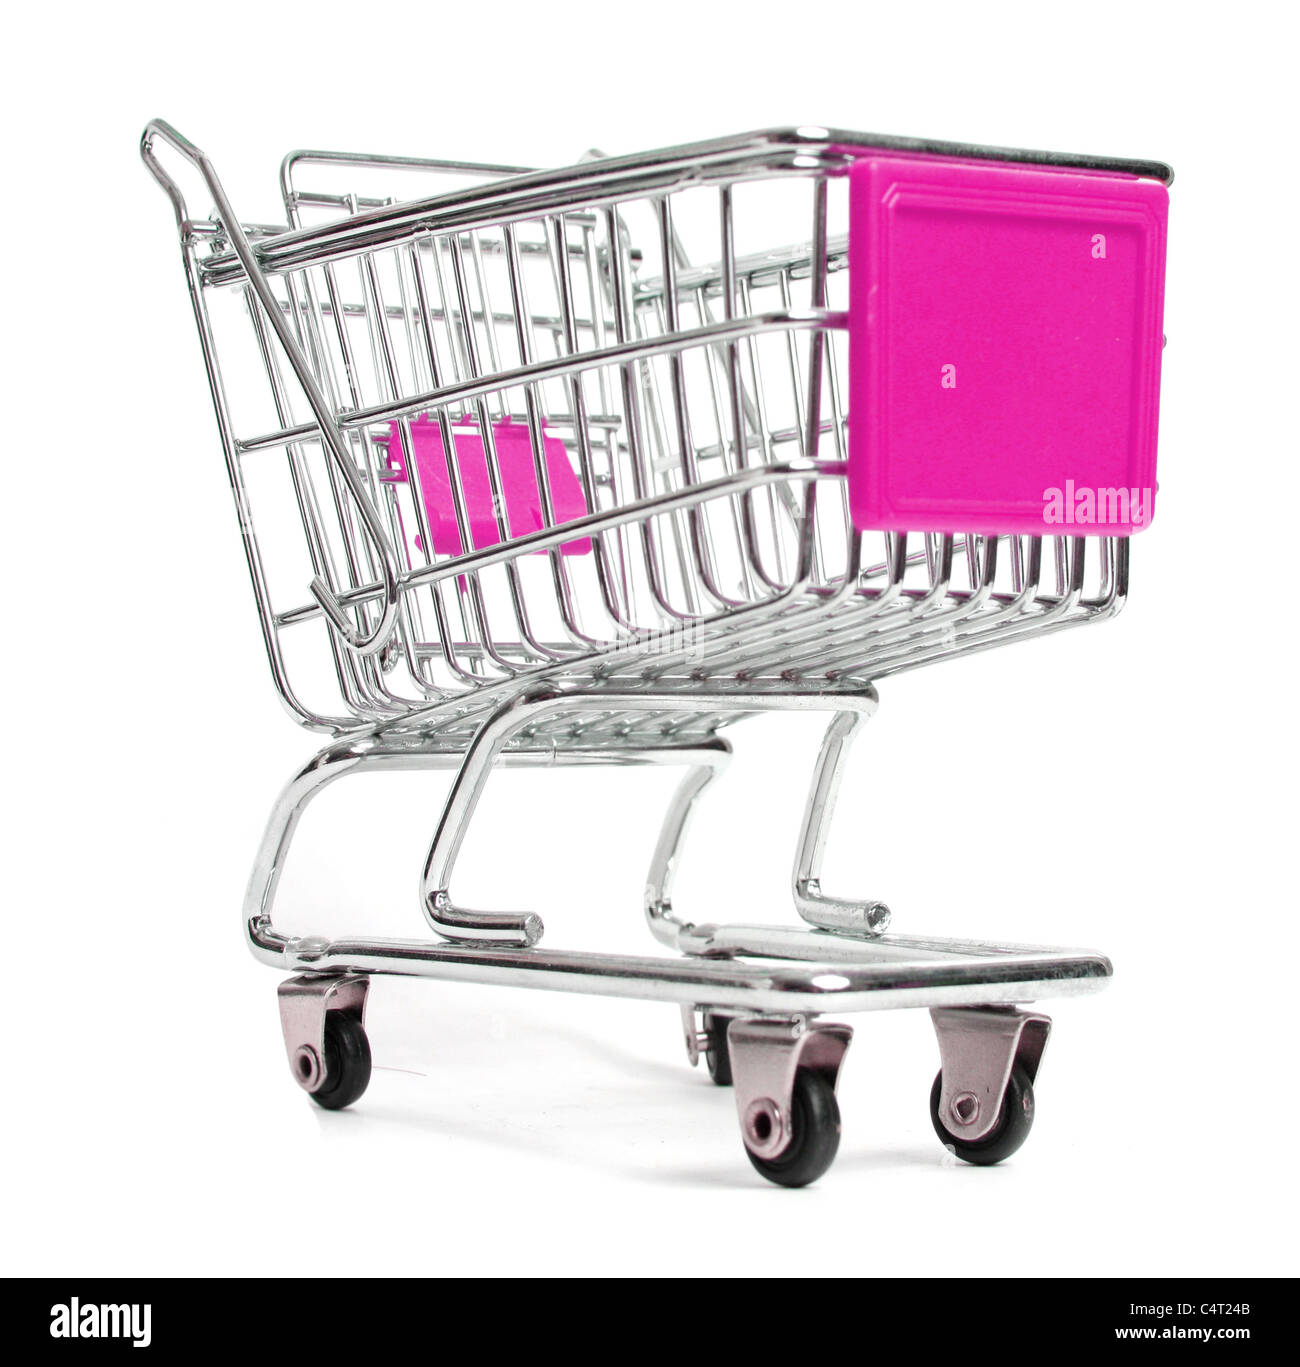 A miniature shopping trolley in studio - Stock Image